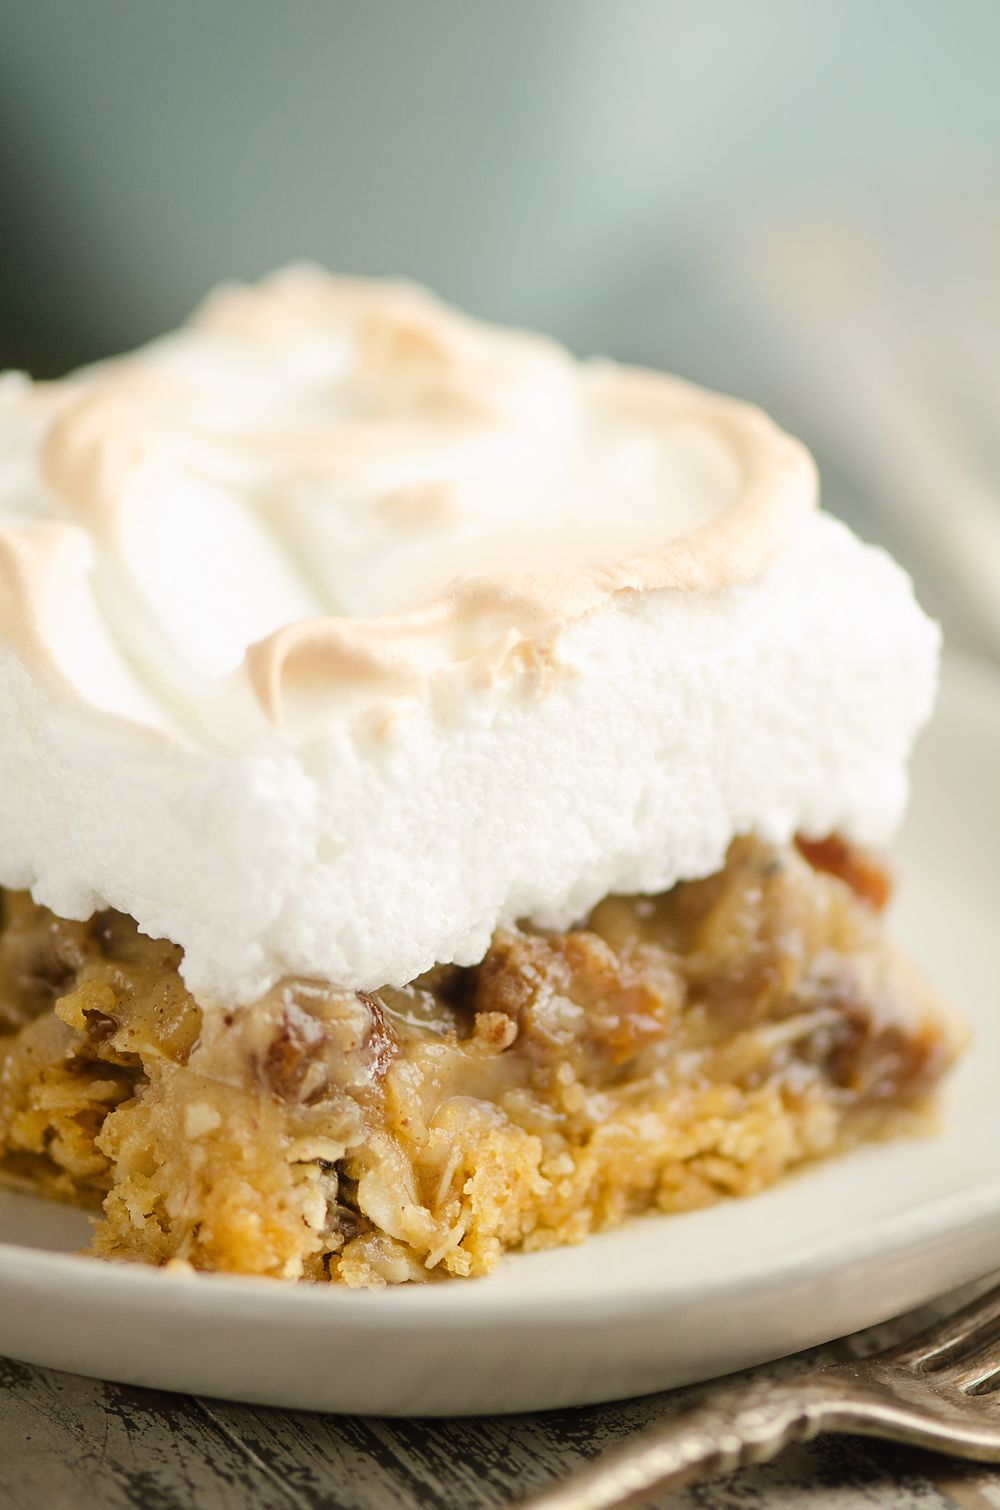 Sour Cream Raisin Meringue Bars Are An Easy Twist On The Old Fashioned Pie Recipe With A Buttery Oatmeal Cru In 2020 Sour Cream Raisin Pie Sour Cream Meringue Desserts